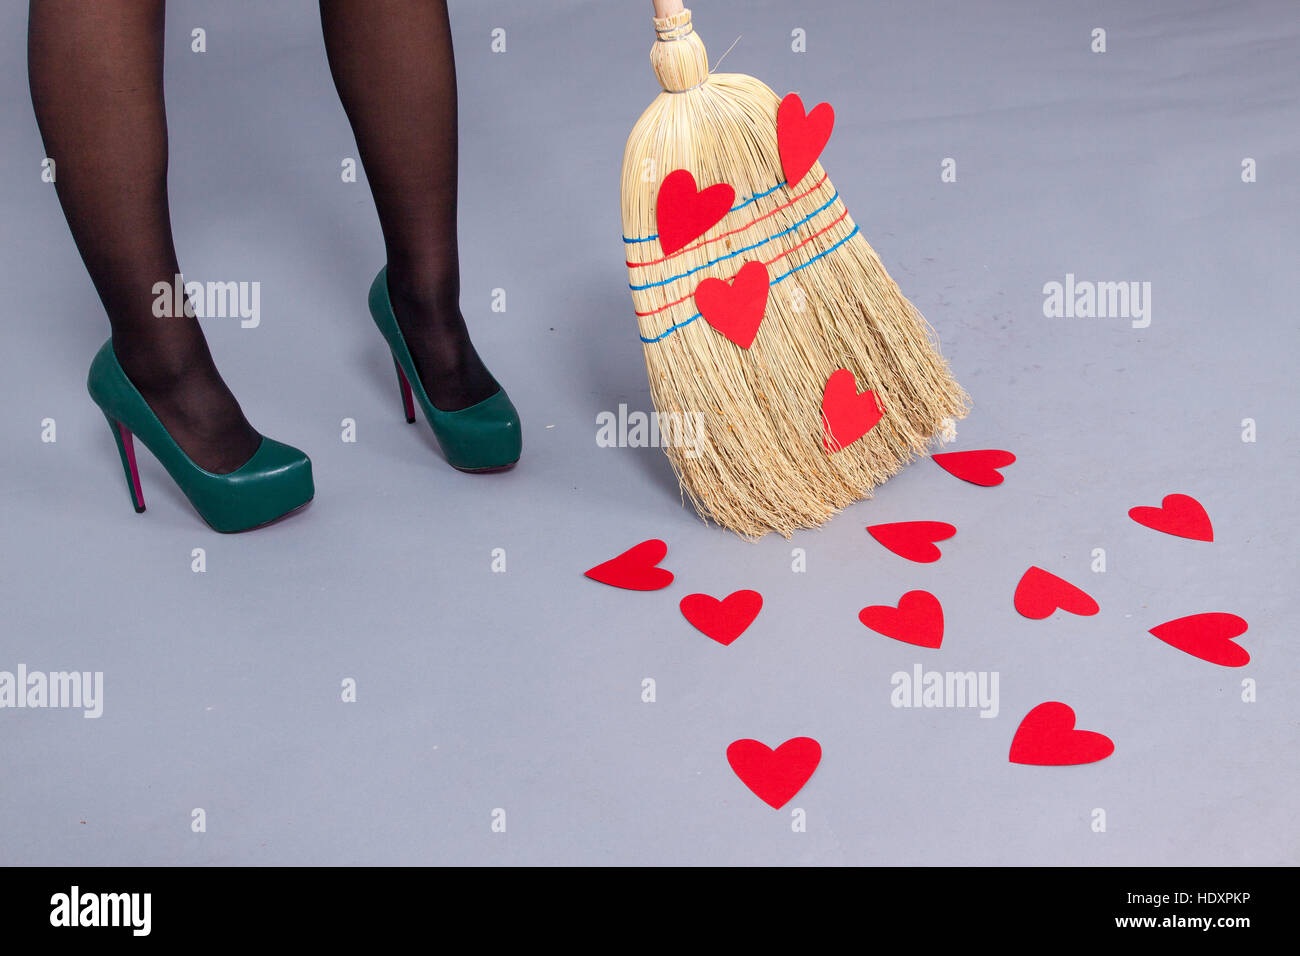 Holiday St.Valentine's Day, beautiful woman posing with red hearts made of paper on the broom - Stock Image